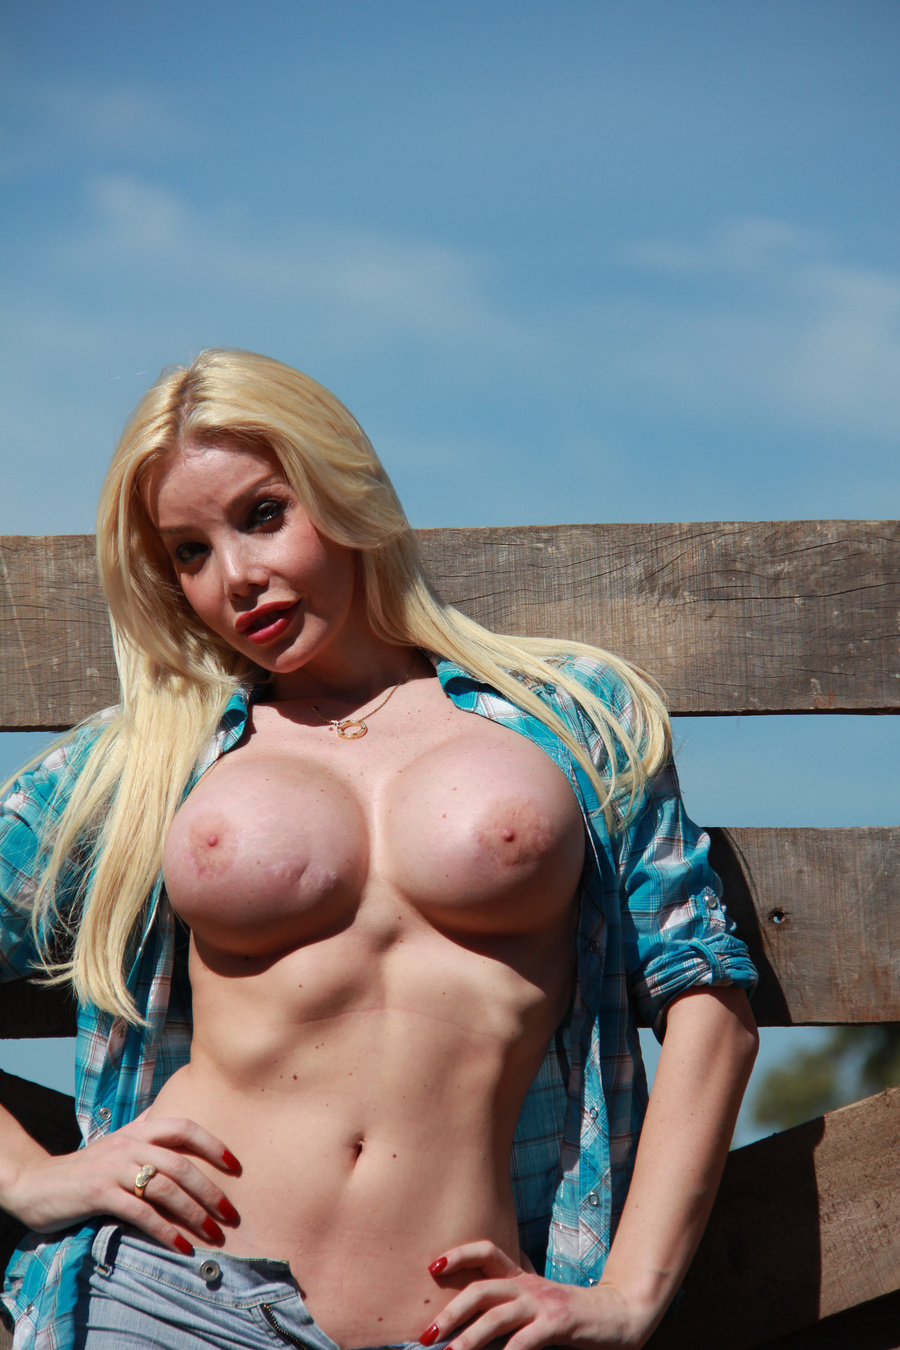 Country Girl Shemale With Cowsized Tits Nee - Xxx Dessert - Picture 12-3700